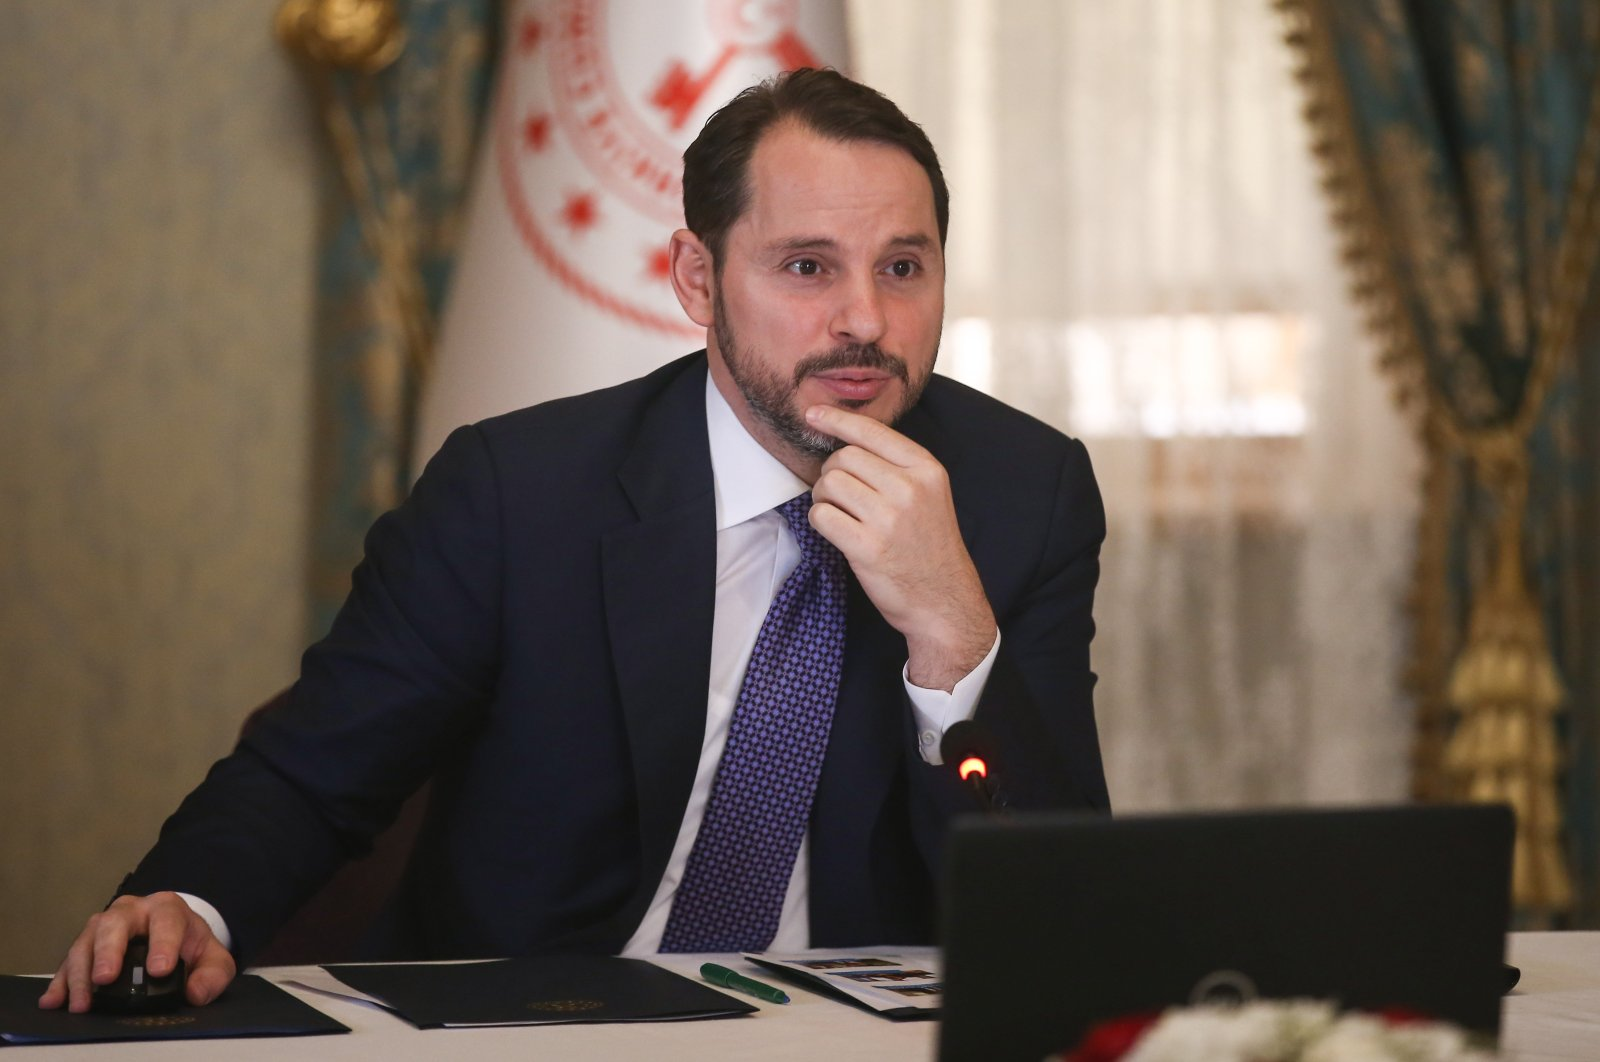 Treasury and Finance Minister Berat Albayrak attends a videoconference at the president's office on the grounds of Dolmabahçe Palace in Istanbul, Turkey, July 16, 2020. (AA Photo)